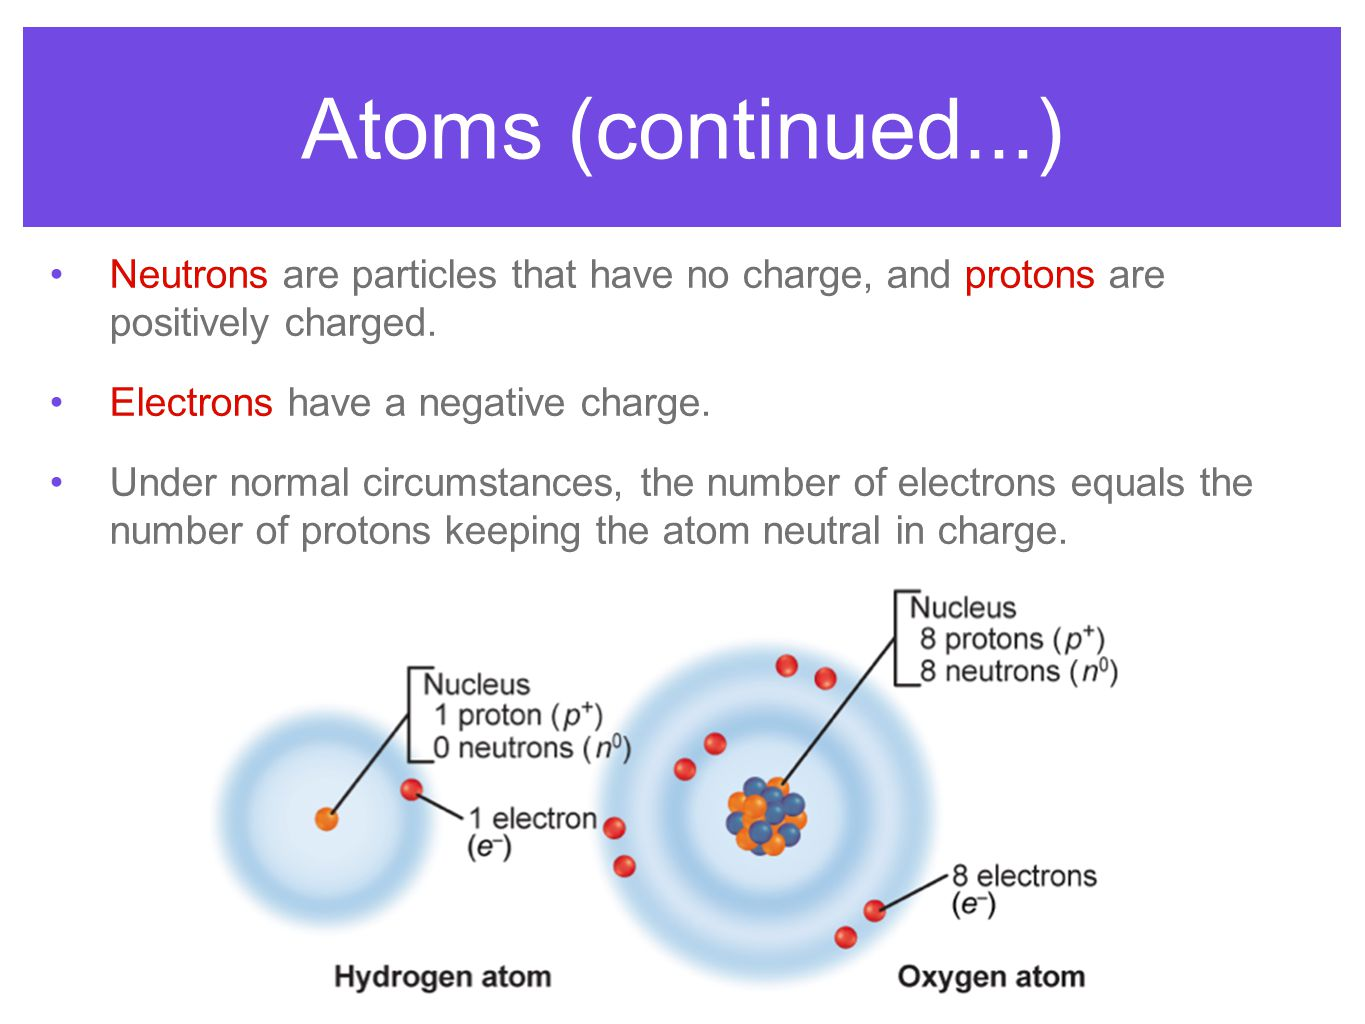 Atoms (continued...) Neutrons are particles that have no charge, and protons are positively charged.